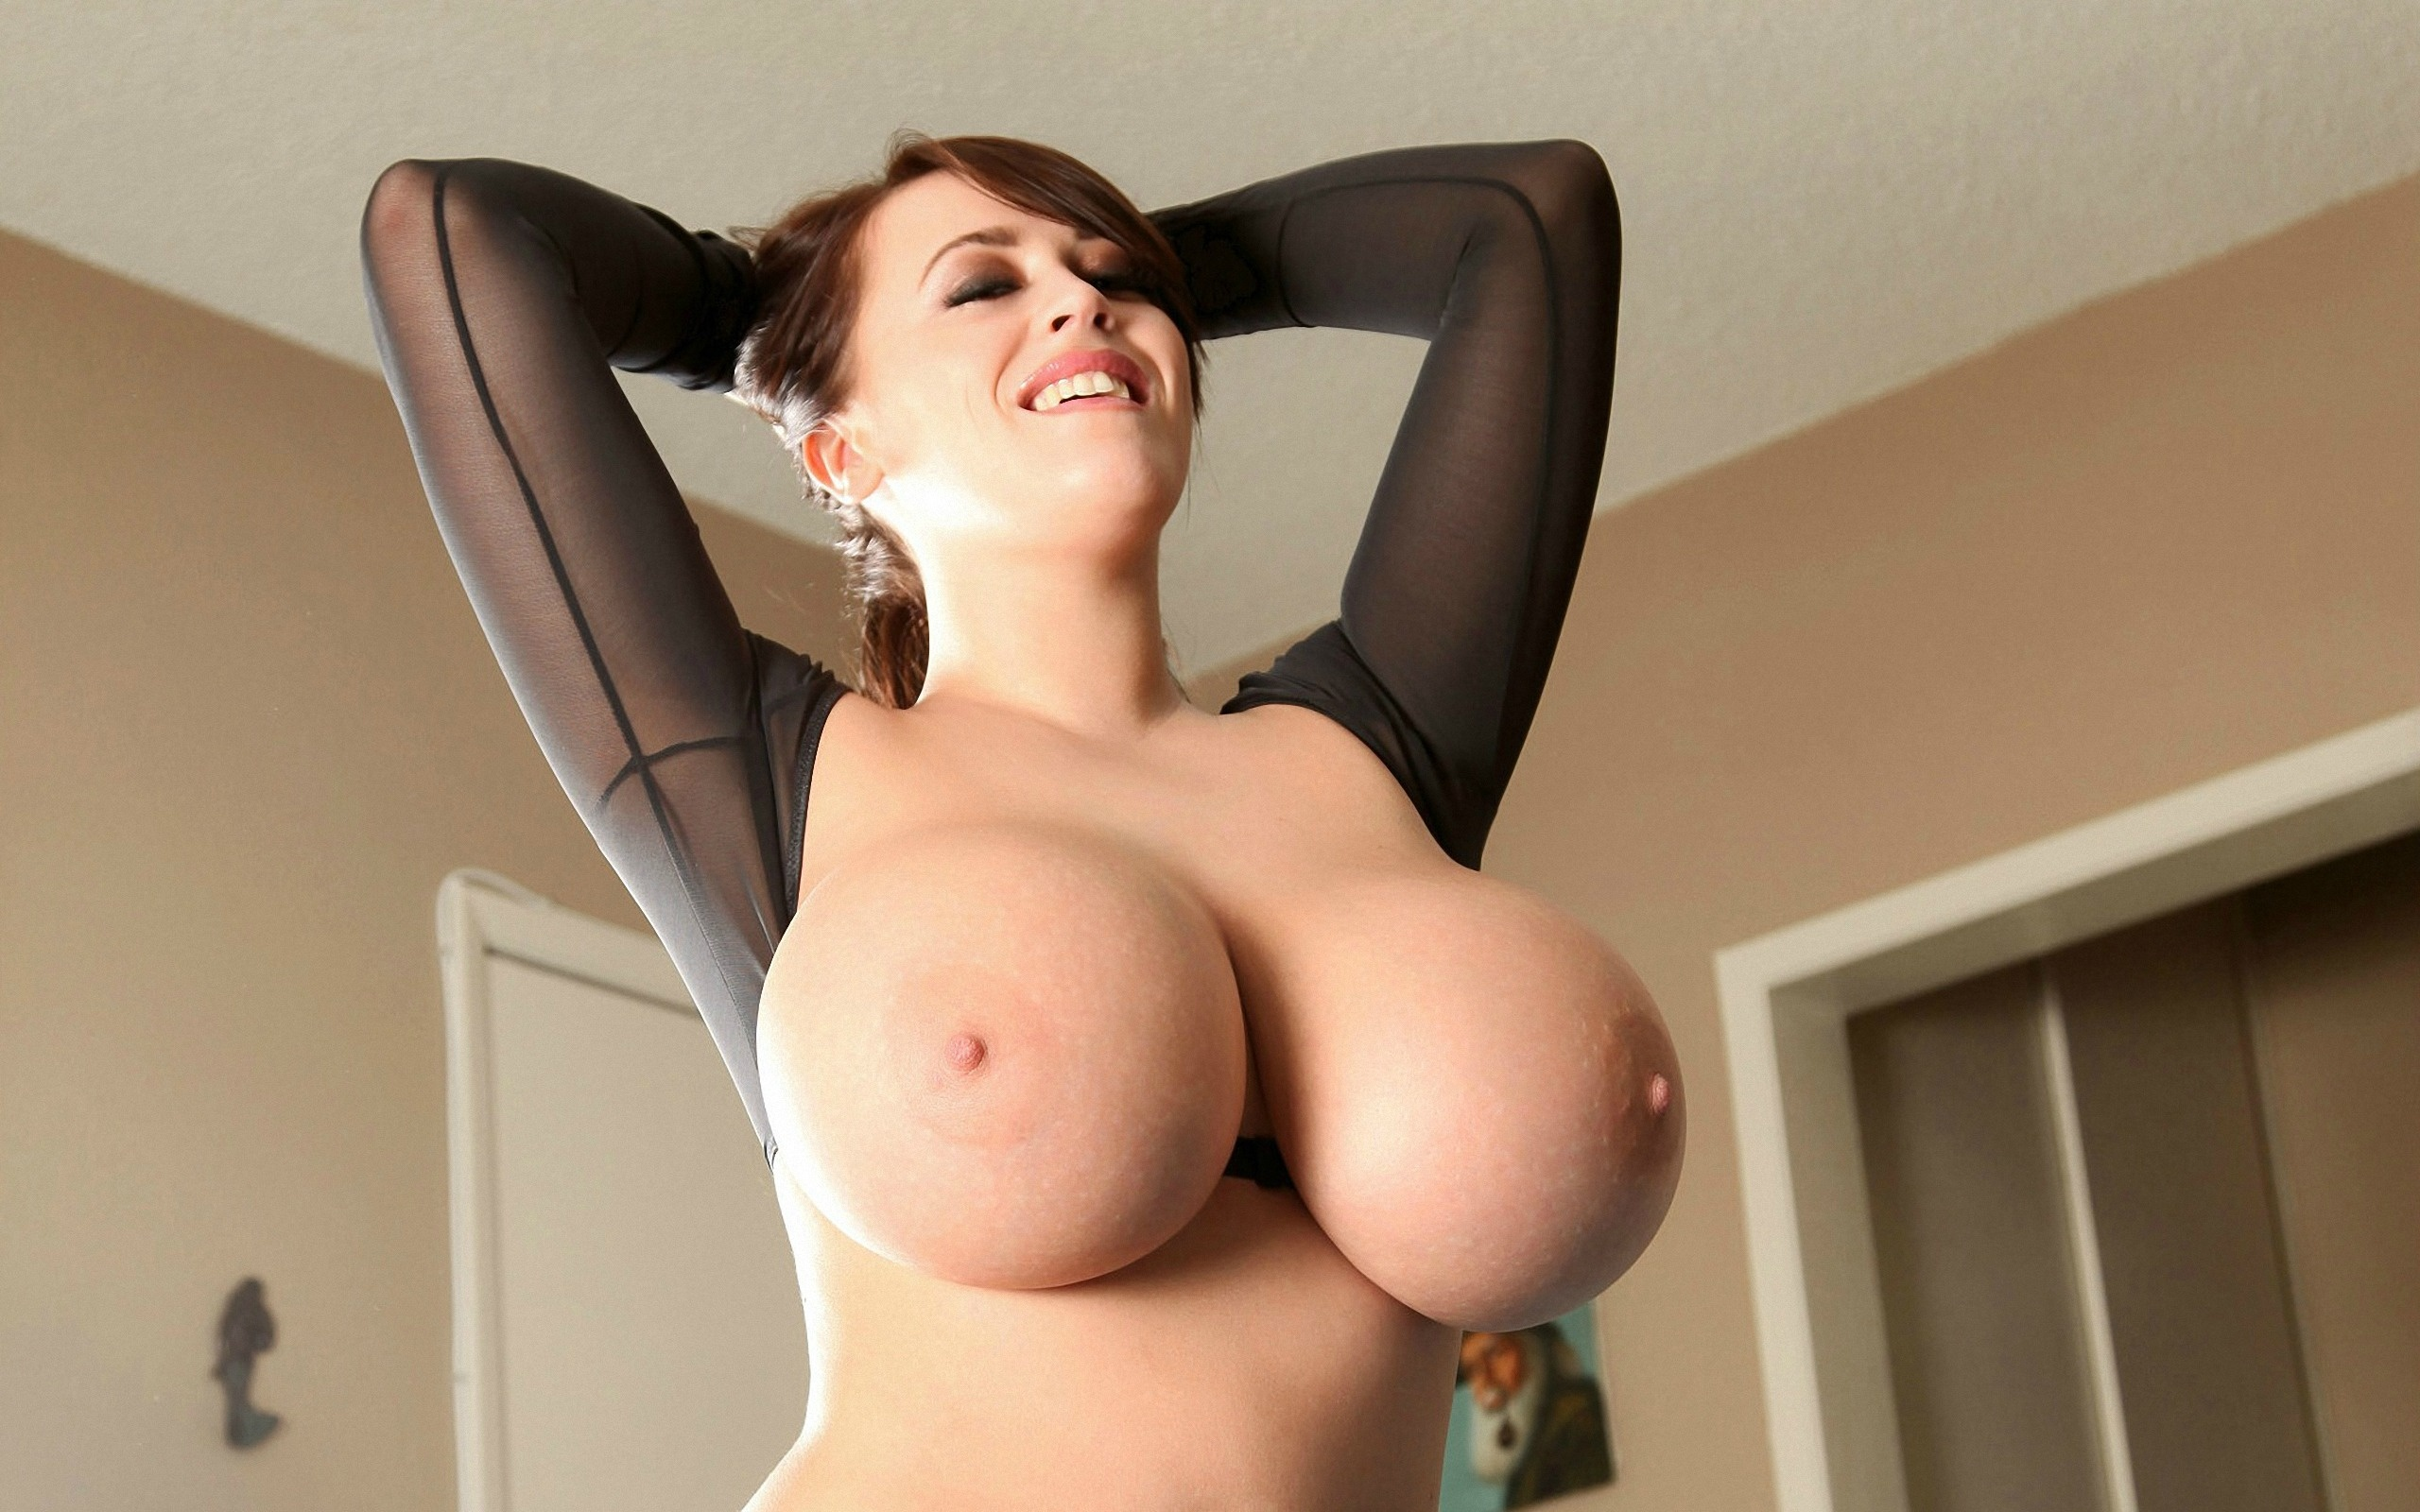 a very big breasted woman having sex